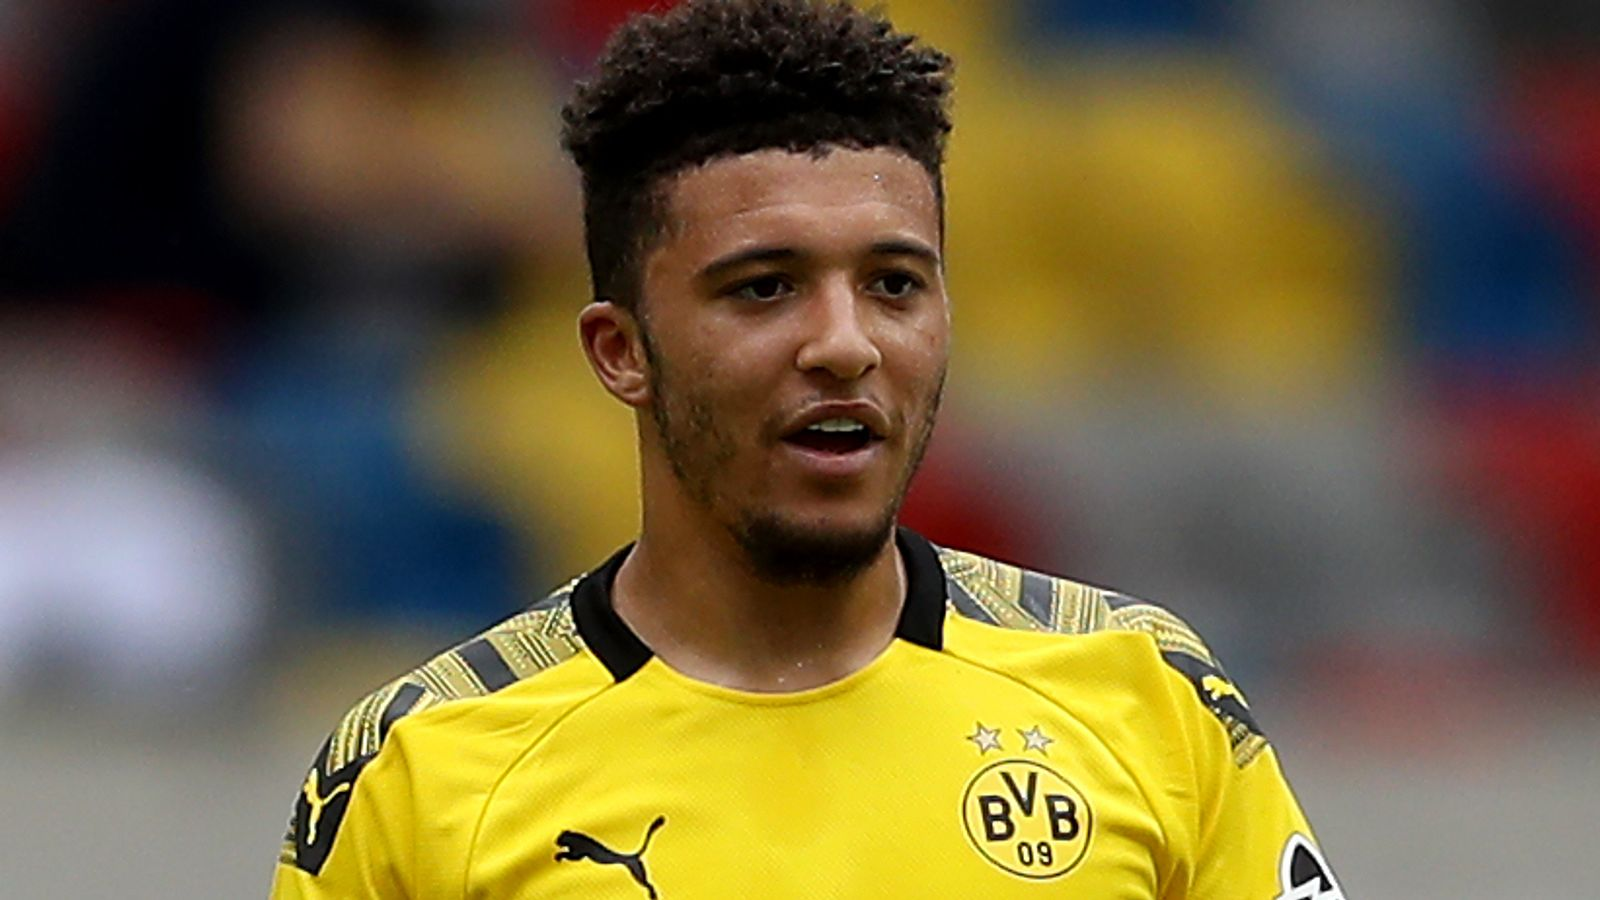 Pep Guardiola: Jadon Sancho Chose To Leave City, He Won't Return